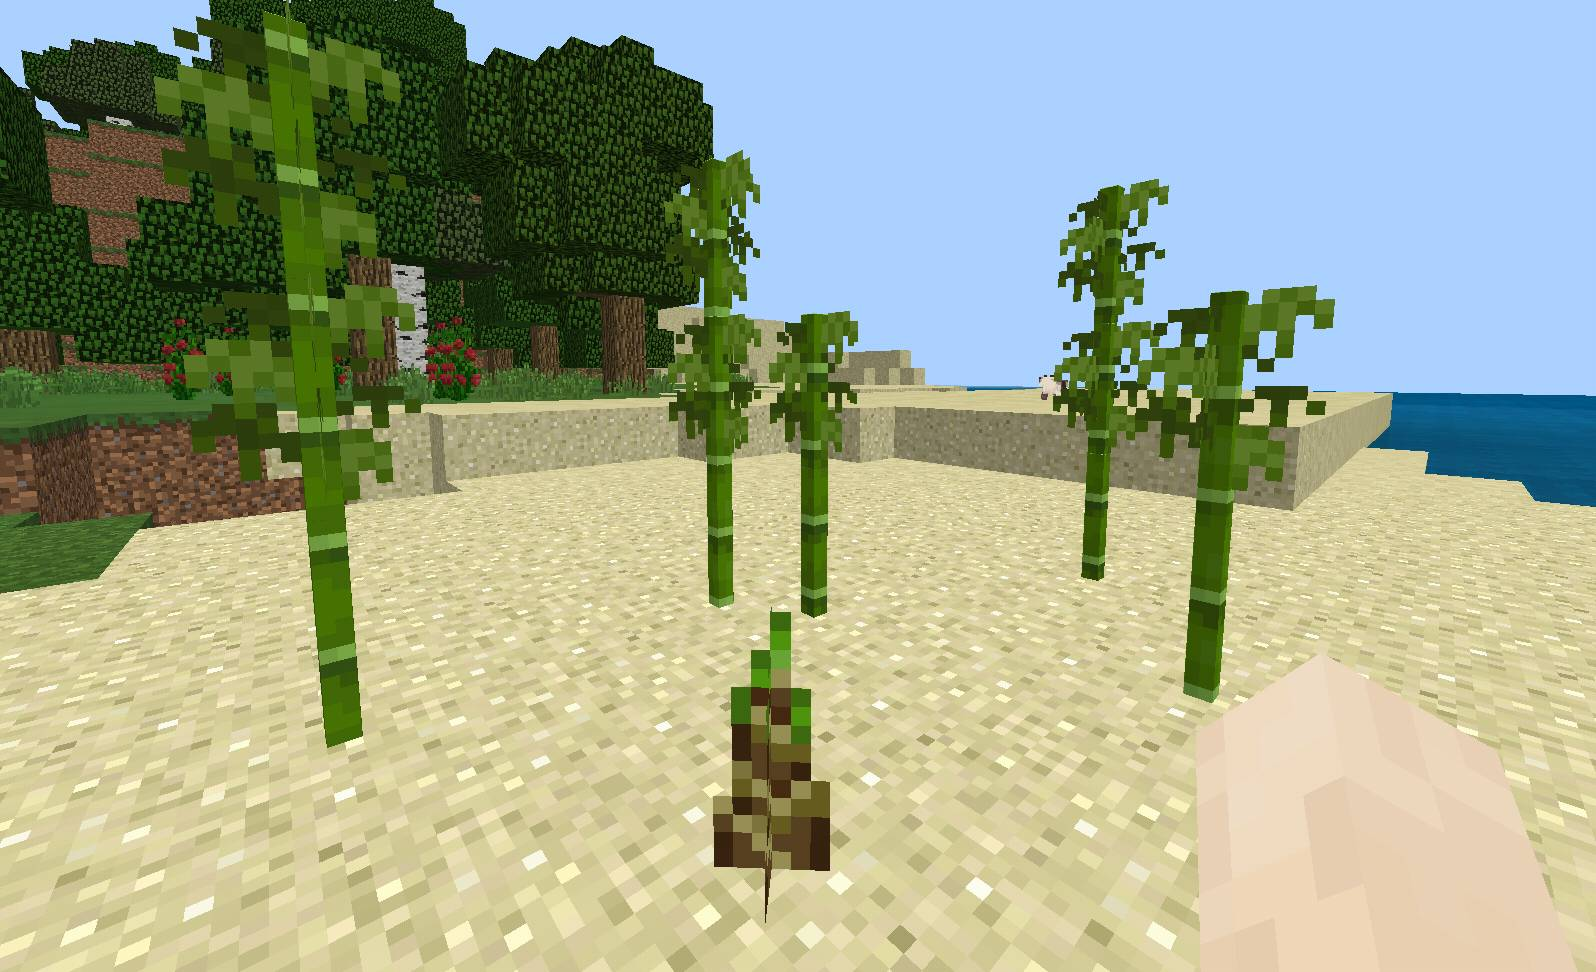 rosnacy bambus minecraft 1.14